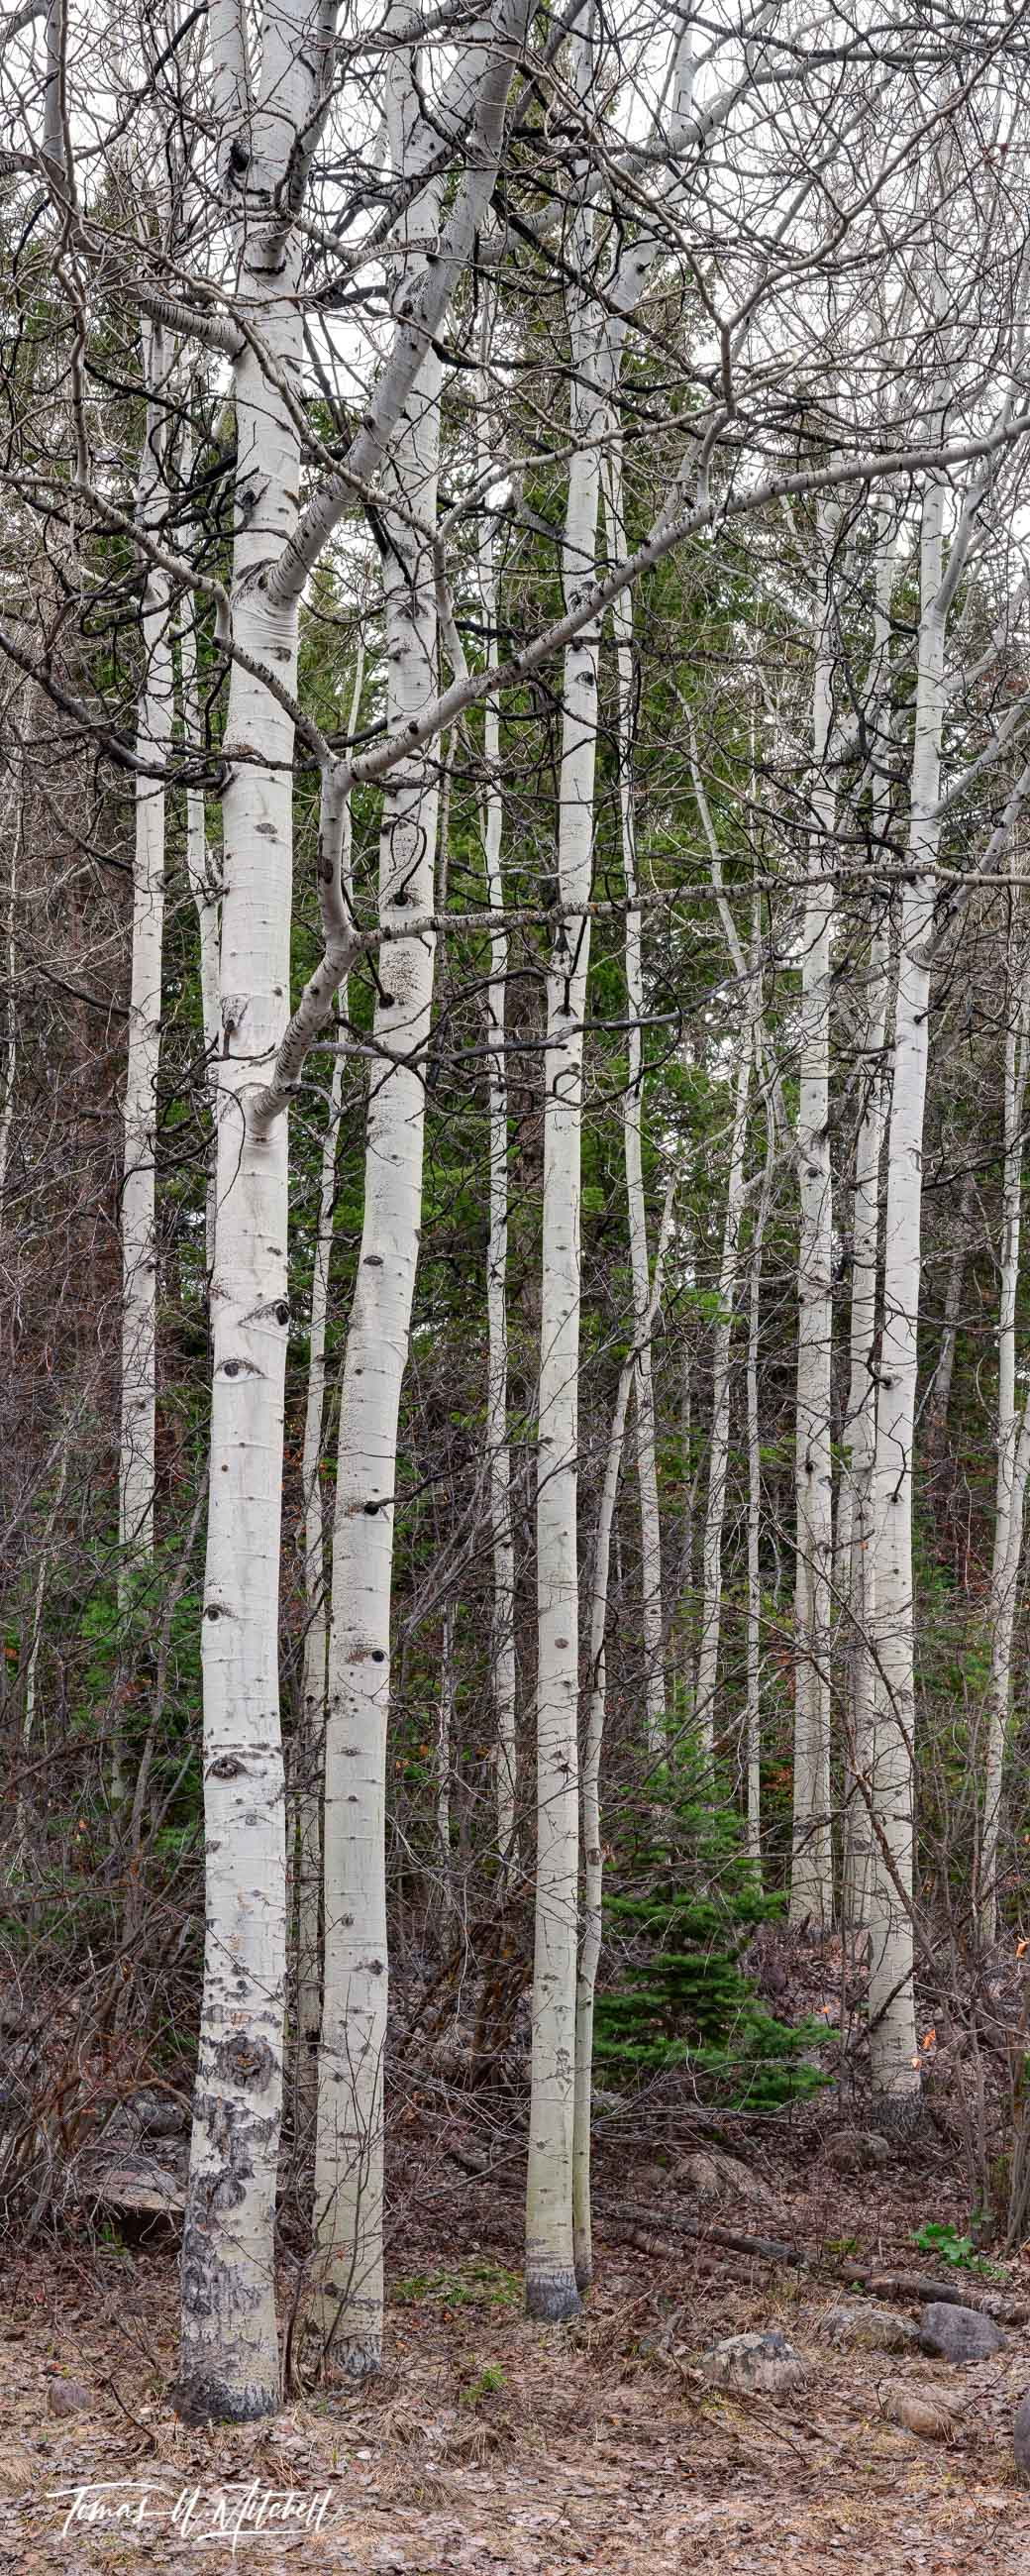 limited edition, fine art, prints, primaveral, sentinels, uinta mountains, early spring, trees, photograph, rainy day, quaking aspens, panoramic, oakley utah, photo